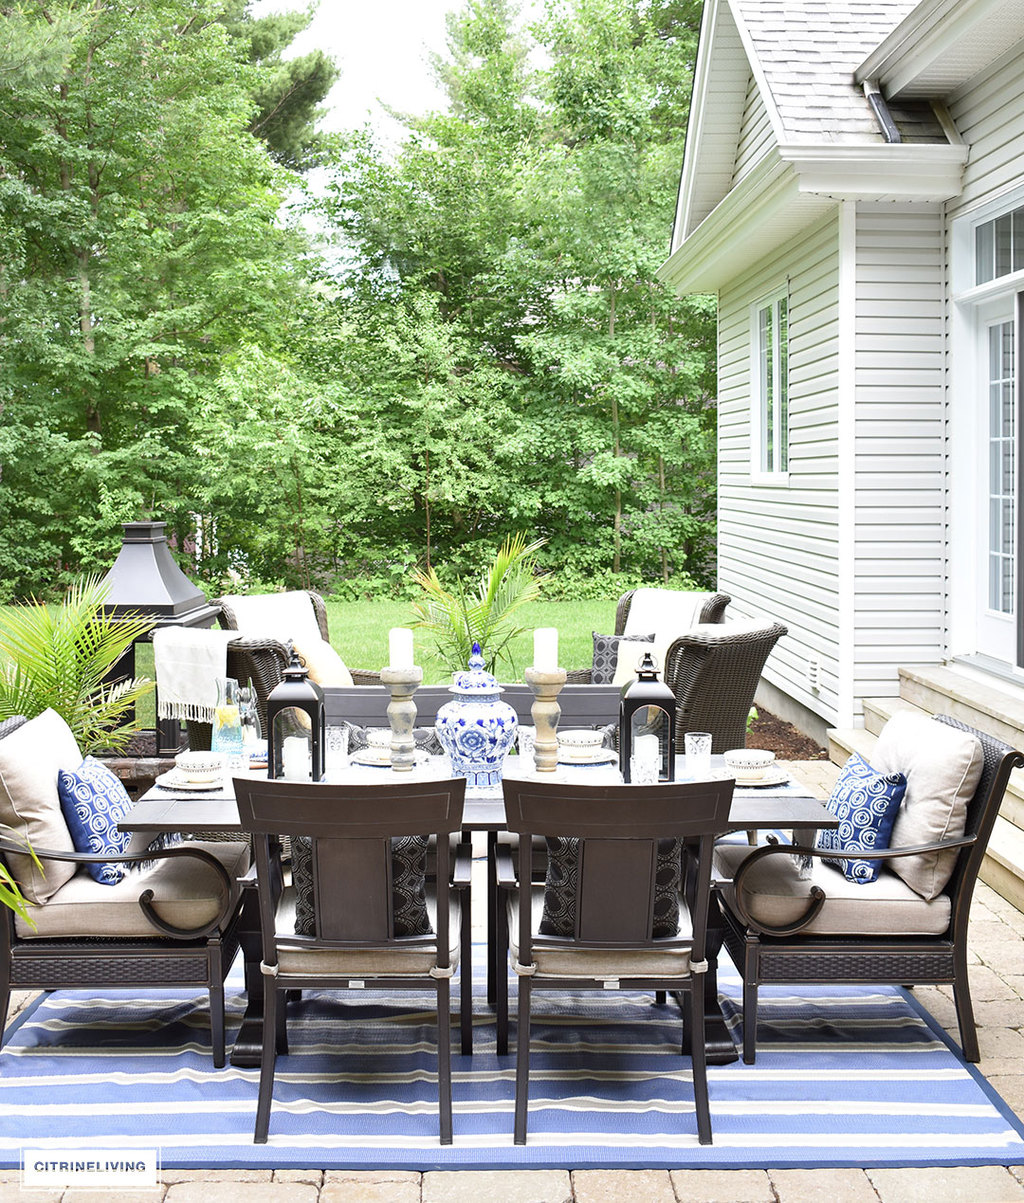 This Gorgeous, Outdoor Oasis Is Perfect For Entertaining! Lounge, Dine And  Have Great